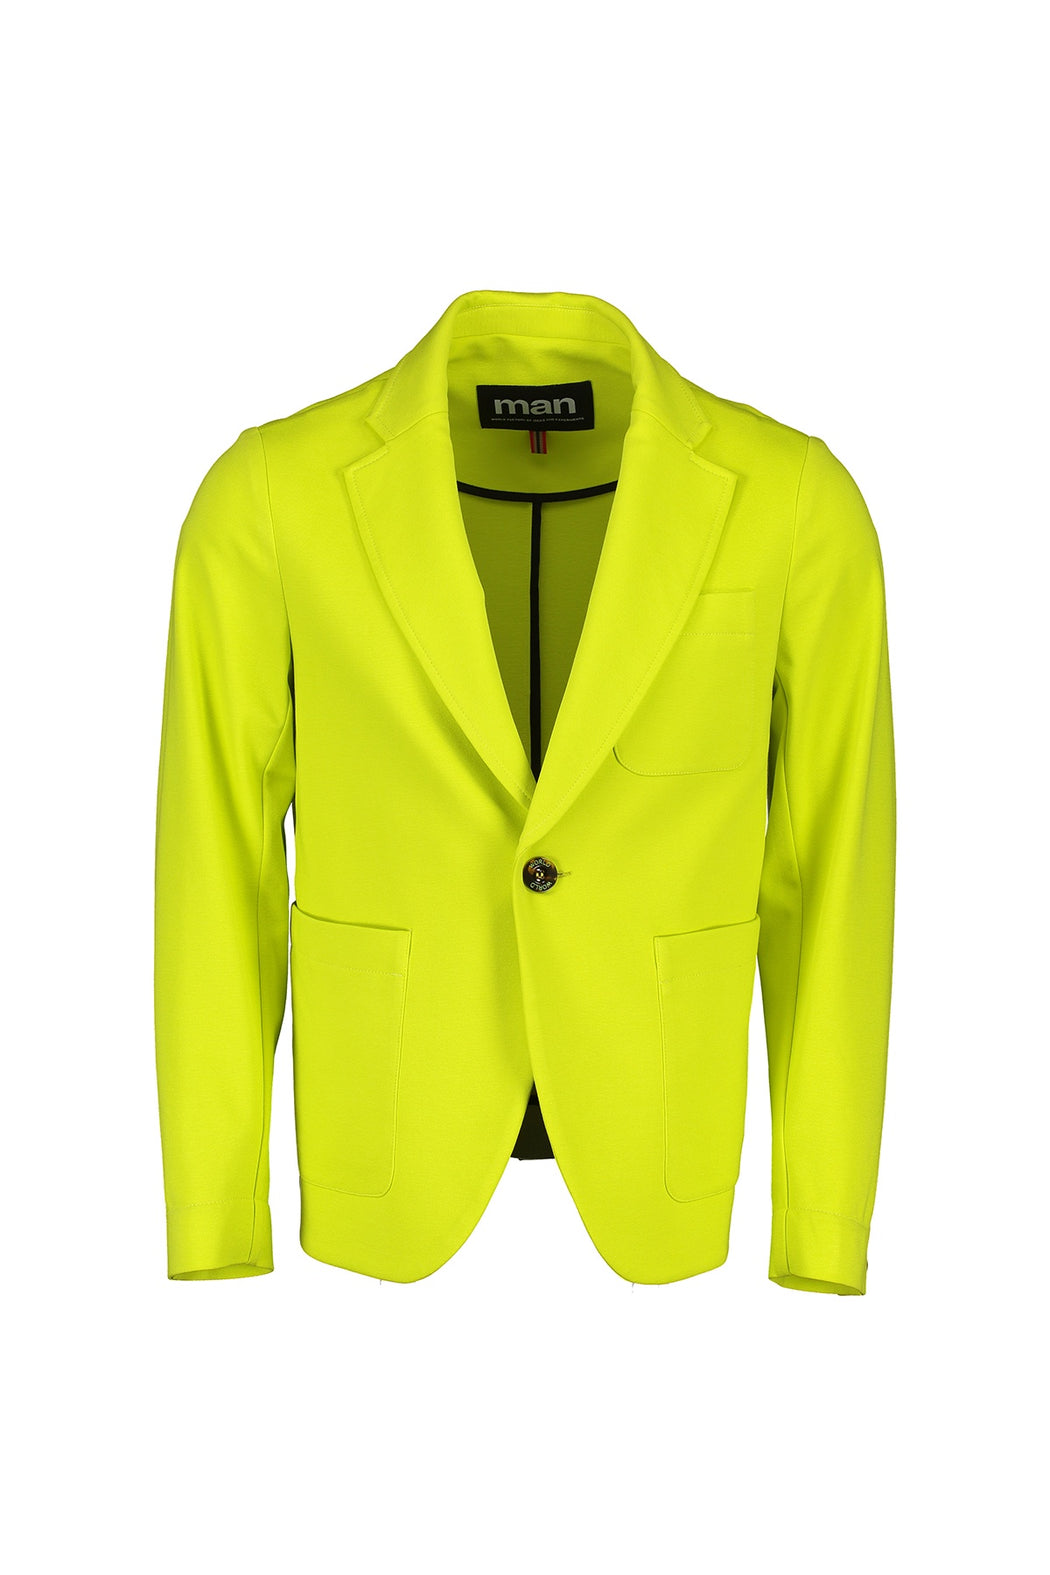 WORLDman 4561 Erratic Jacket Fluro Yellow